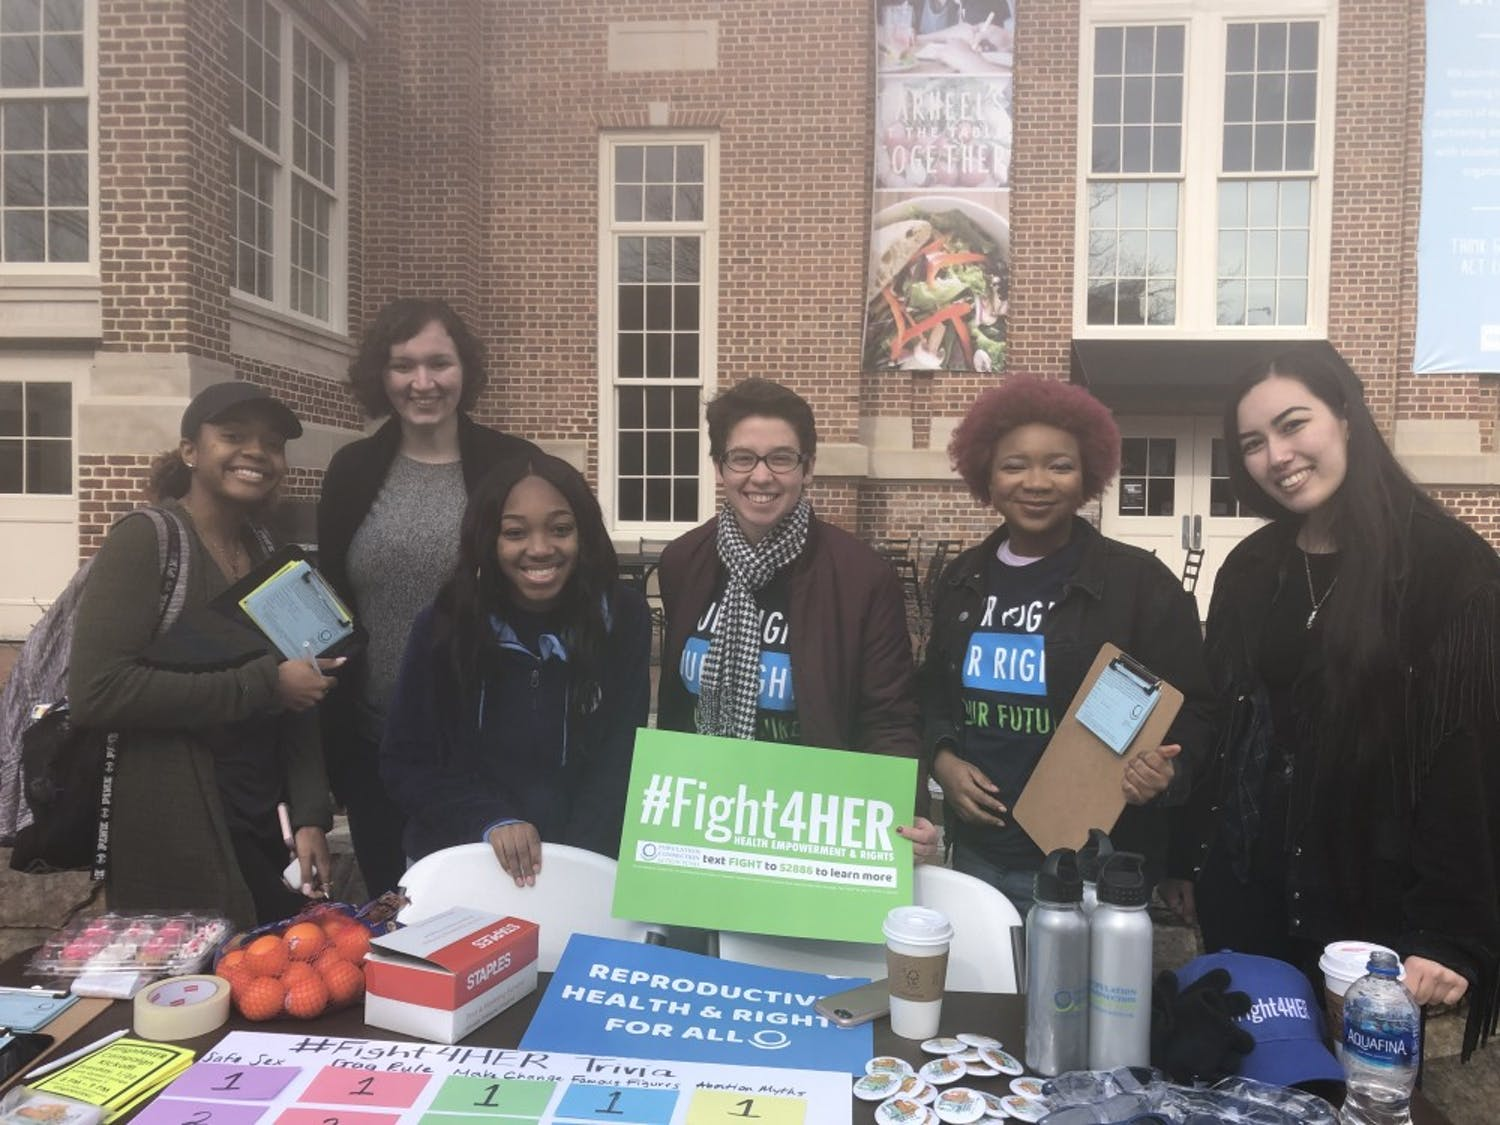 Members of the #Fight4HER campaign at an event in the Pit on Jan. 17, 2019. #Fight4HER is a grassroots campaign founded by the Population Connection, the largest grassroots population organization in the United States, according to its website. #Fight4HER's mission is to block Trump's Protecting Life in Global Health Assistance policy, his 2017 extension of Ronald Reagan's global gag rule that restricted NGOs from using any of the country's $8.8 billion of global health funding for organizations that provide abortion services or referrals.